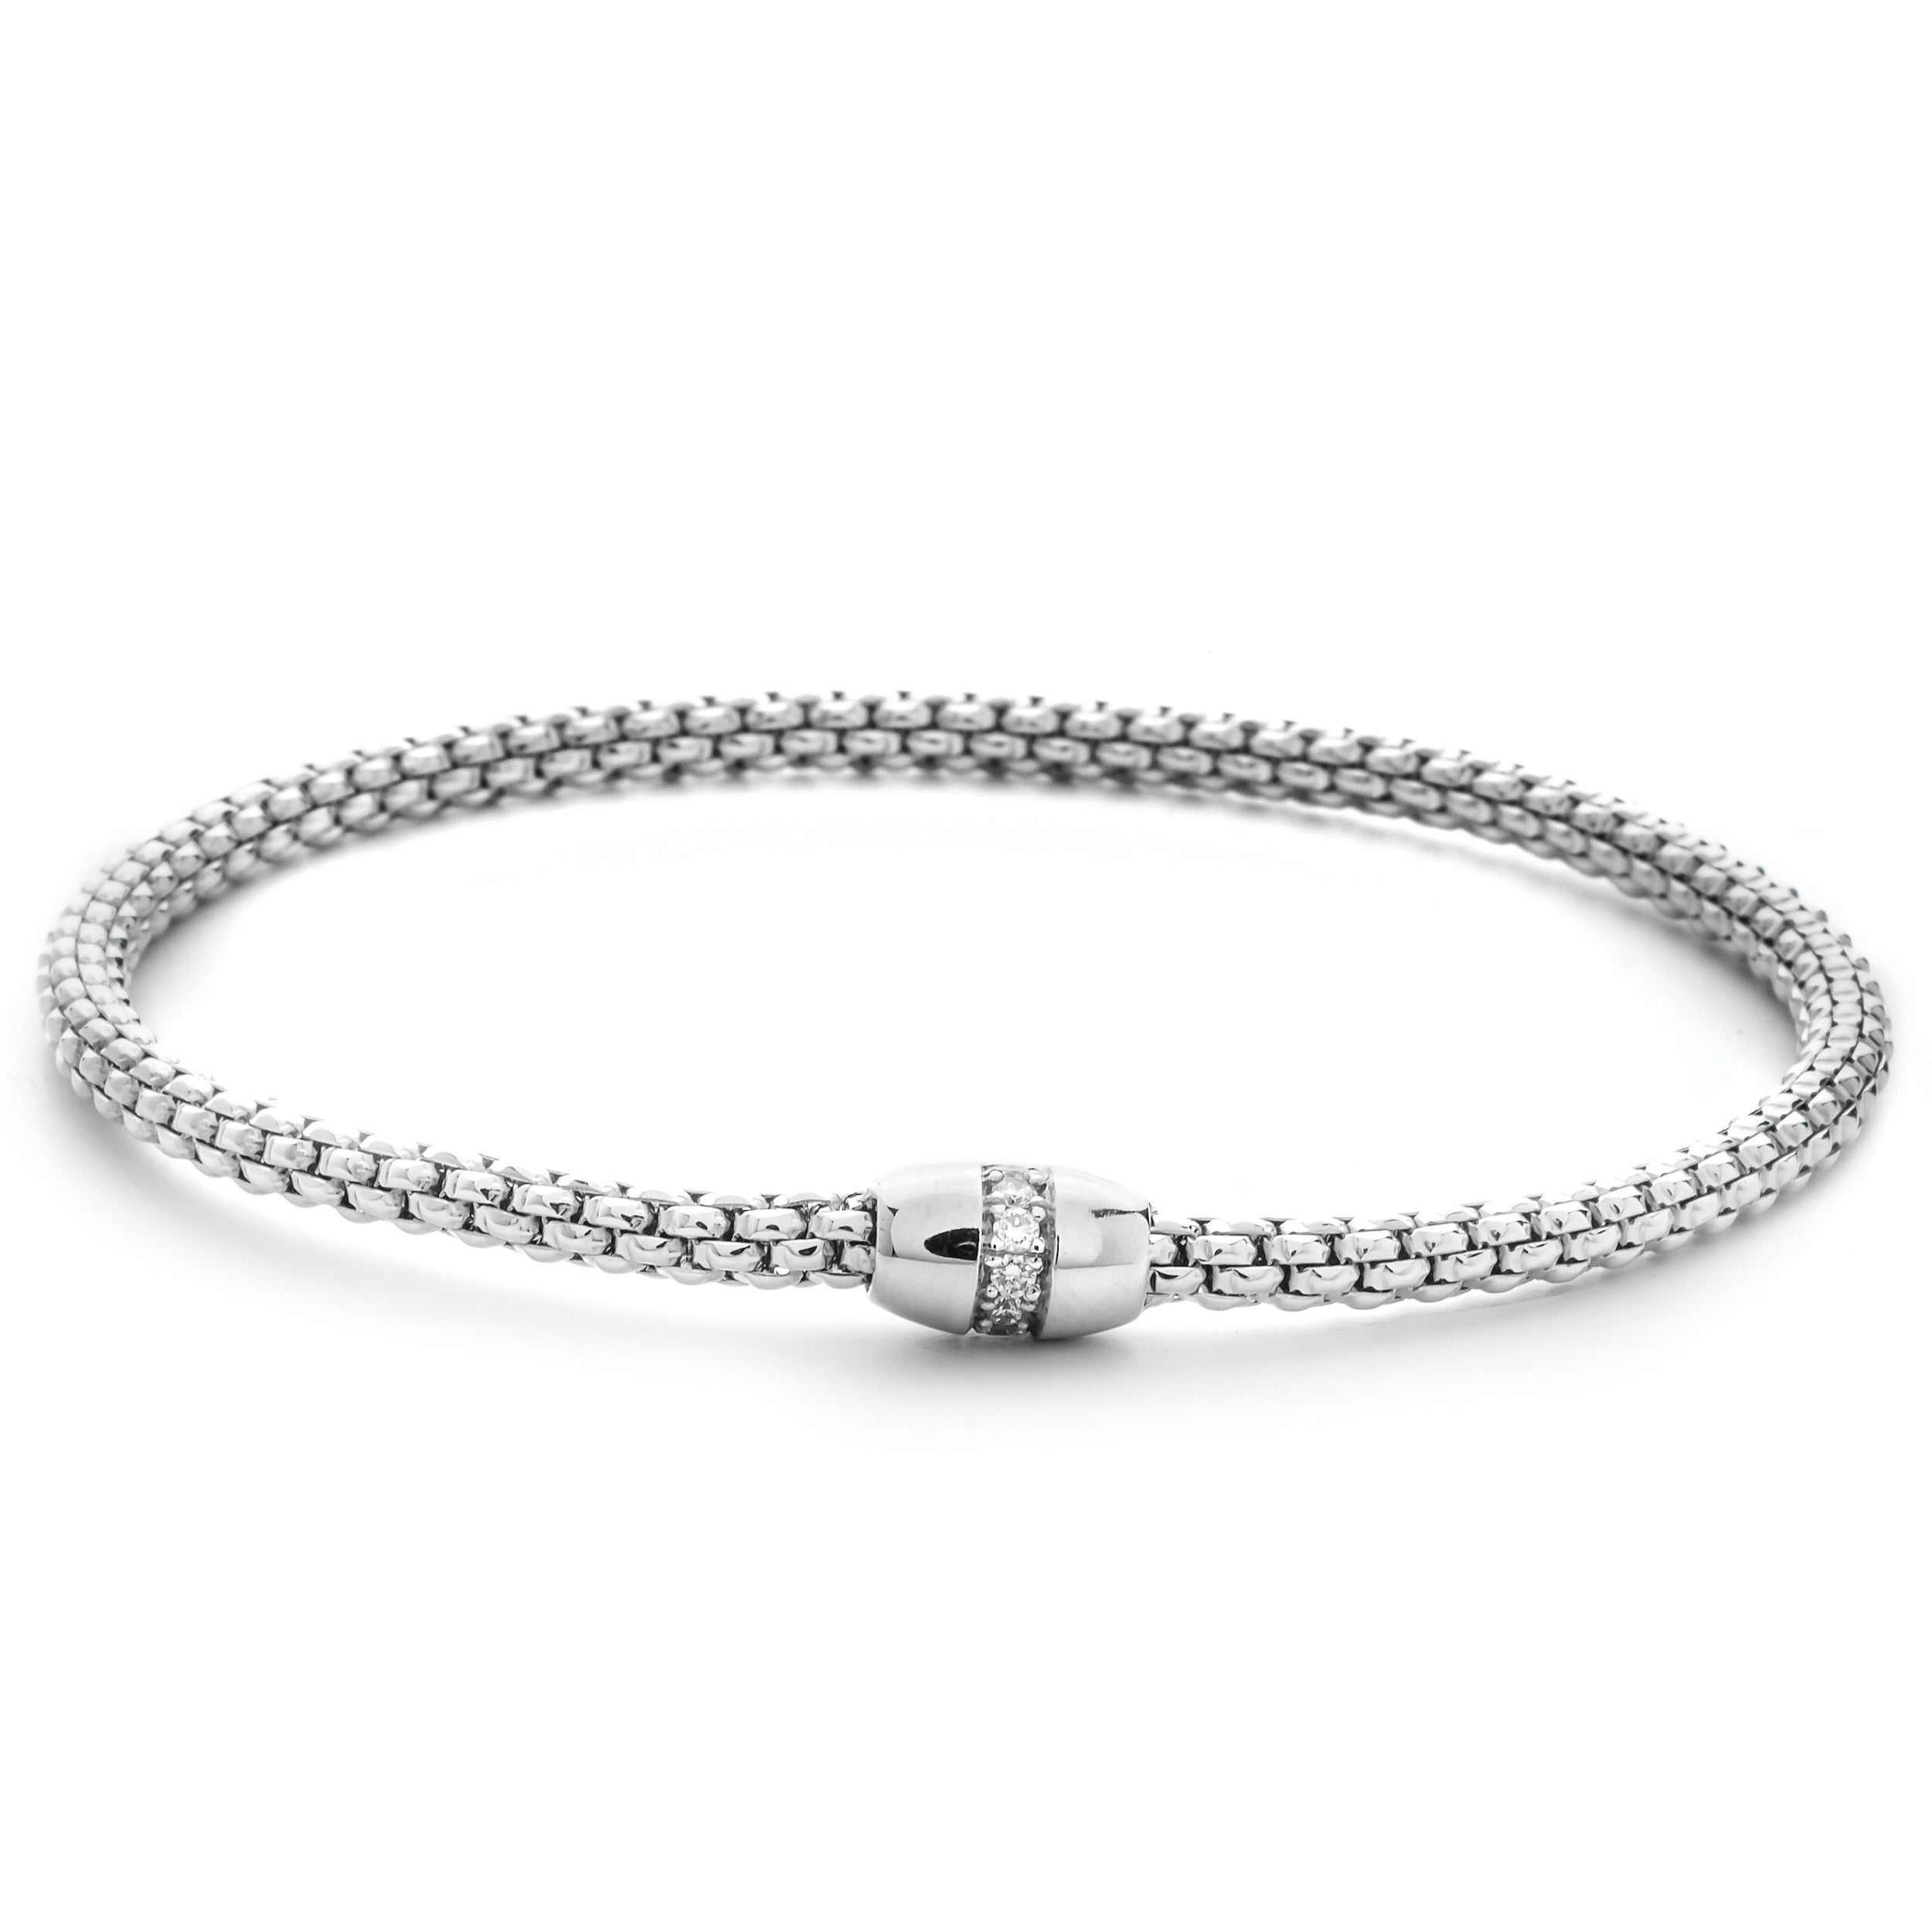 kors gallery bracelet brilliance silver bangles pave michael astor bangle studded braceletsilvertone product lyst pav jewelry